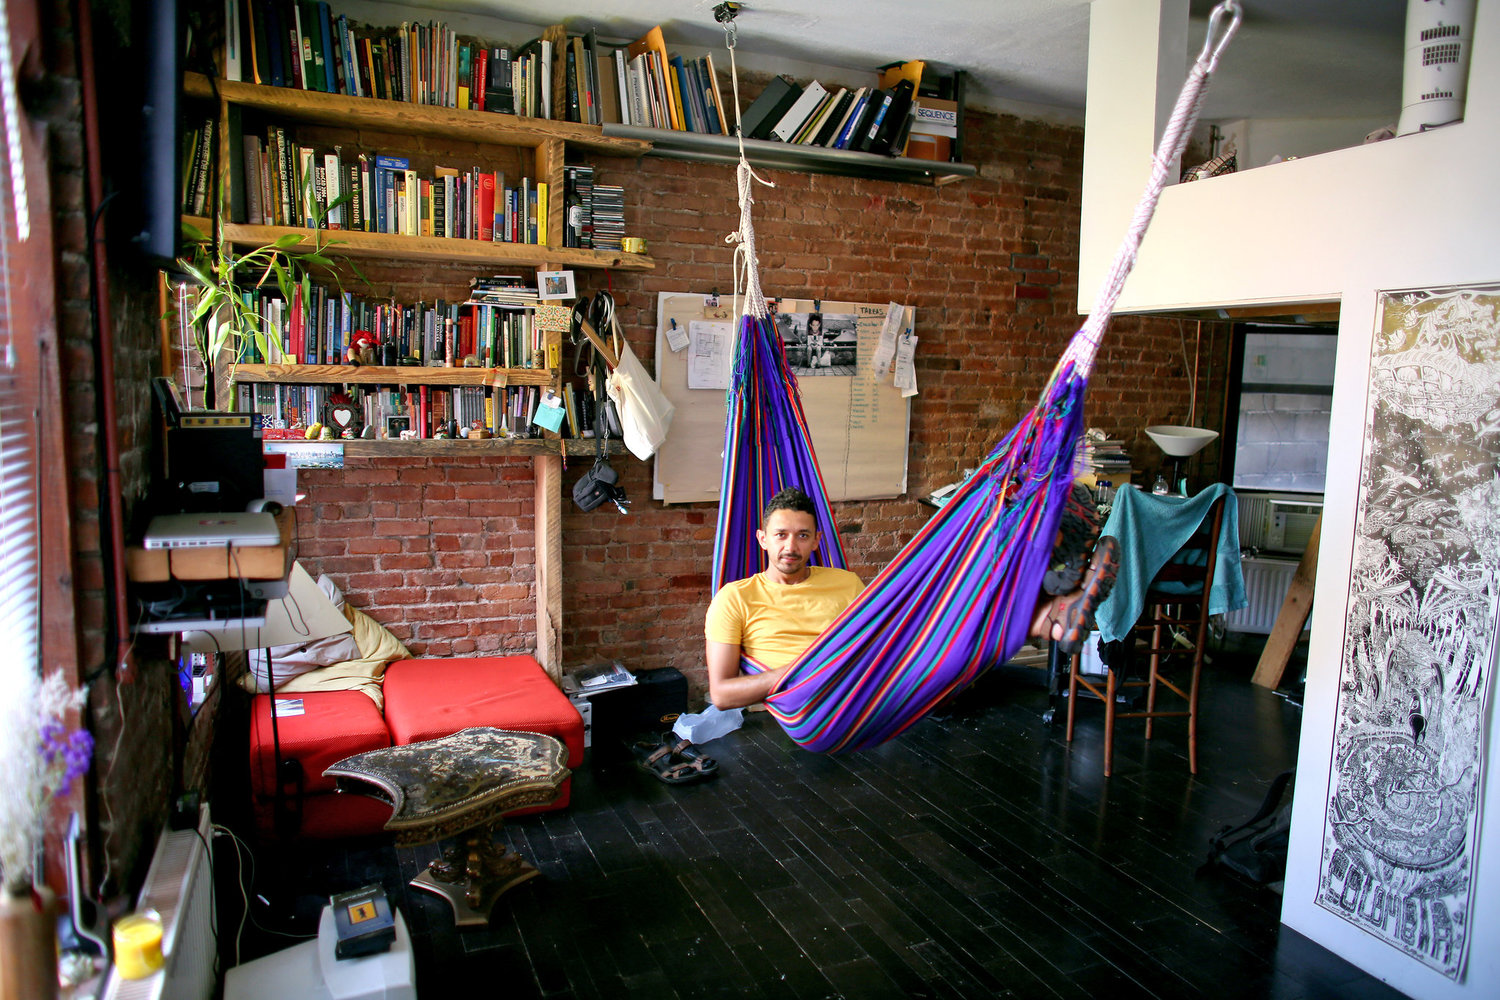 Miguel Valderrama was the first person to buy an apartment at Umbrella House following an agreement with the city to legalize the building. He paid $45,000 for a 300-square-foot apartment in 2009.